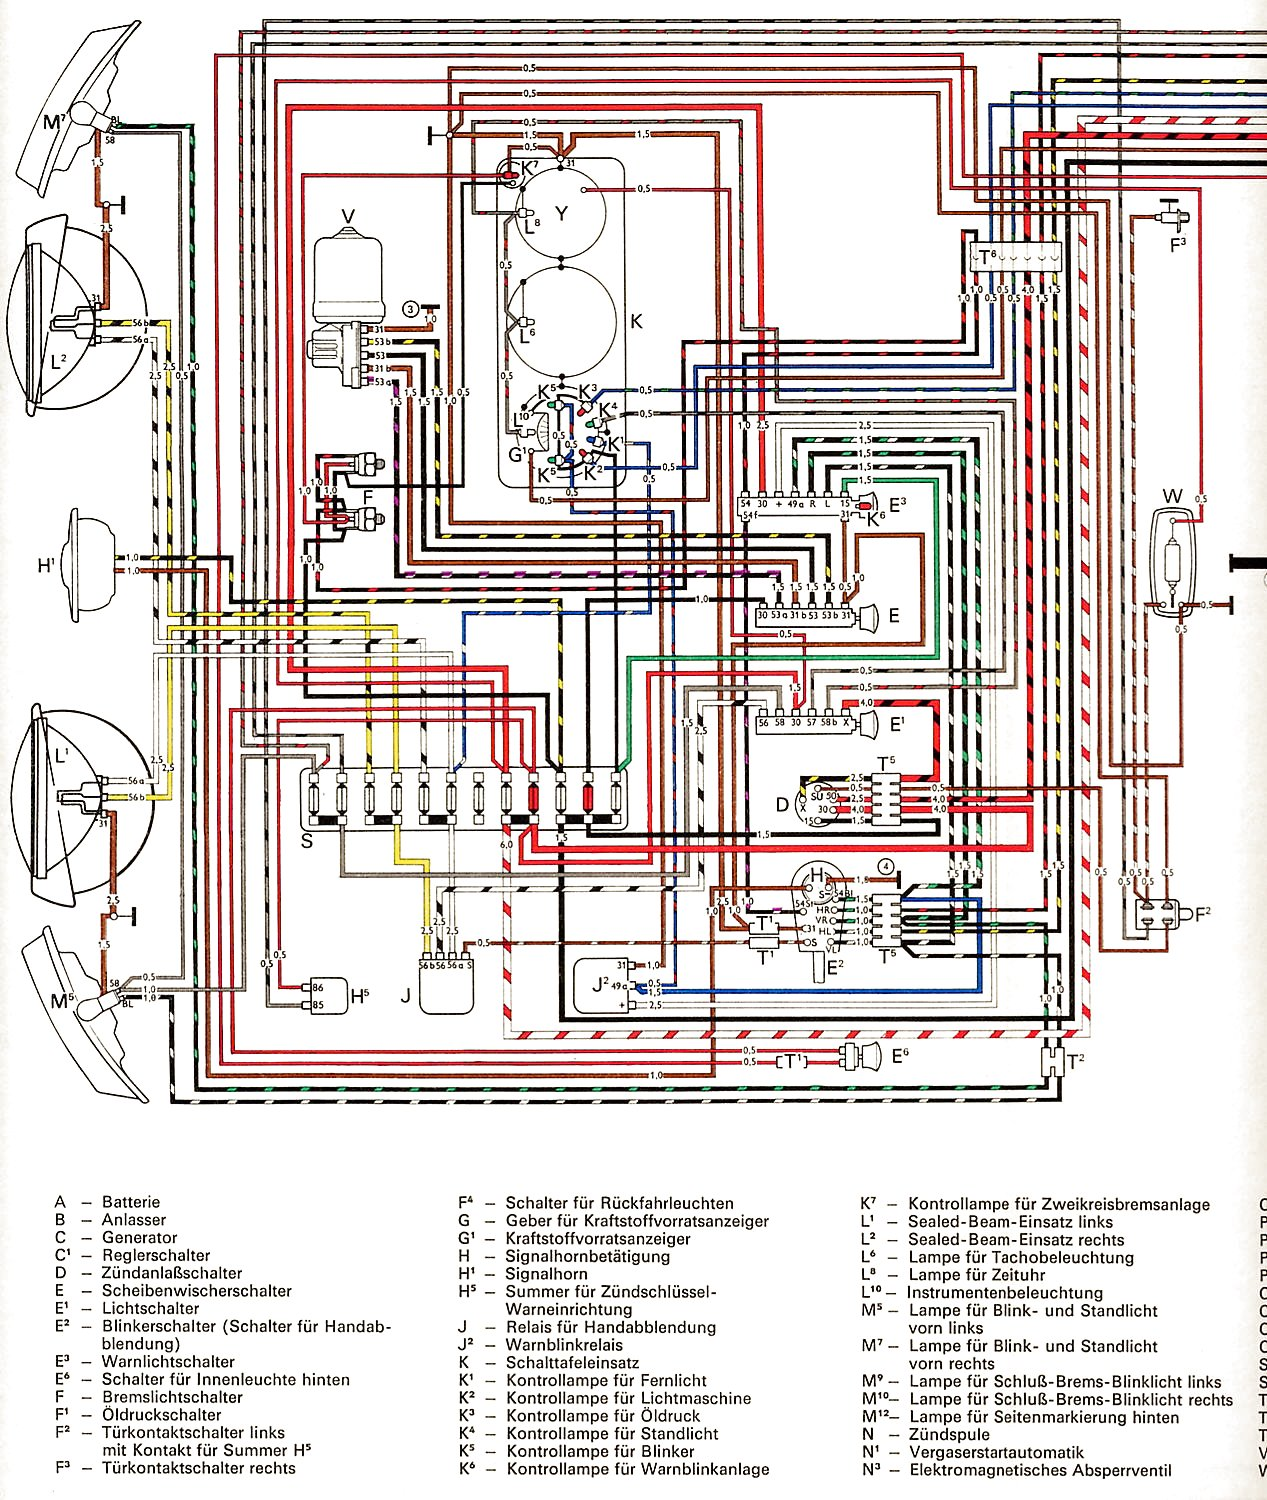 1973 Vw Van Wiring Diagram Opinions About Wiring Diagram \u2022 1974 VW  Alternator Wiring Diagram 1974 Vw Bus Alternator Wiring